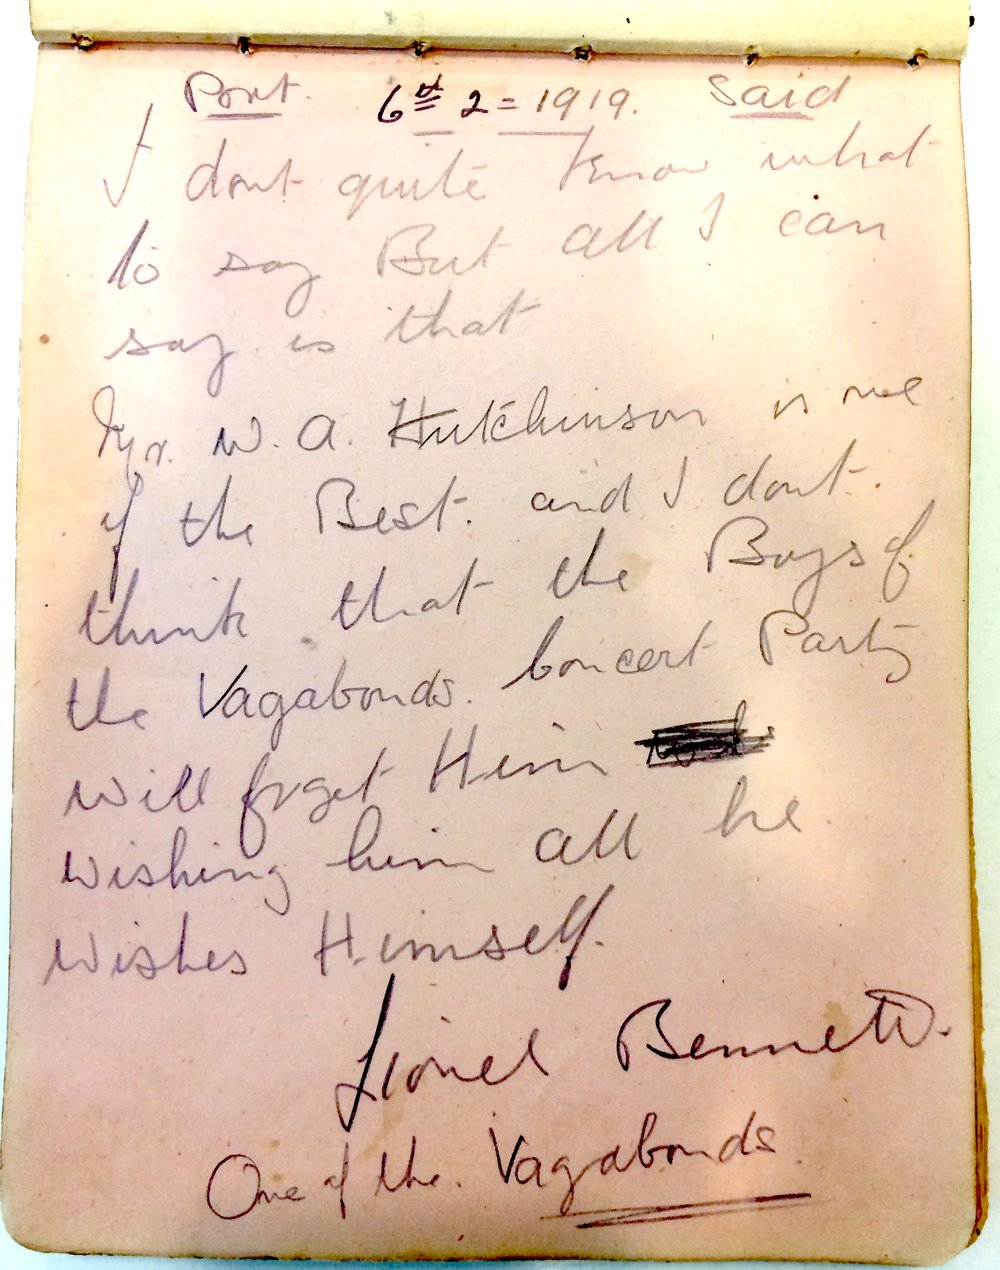 """""""I don't quite know what to say But all I can say is that Mr W A Hutchinson is one of the Best and I don't think that the Boys of the Vagabonds Concert Party will forget Him. Wishing him all he wishes Himself, Lionel Bennett, One of the Vagabonds."""" This inscription dated the Vagabonds' performance to early February 1919."""